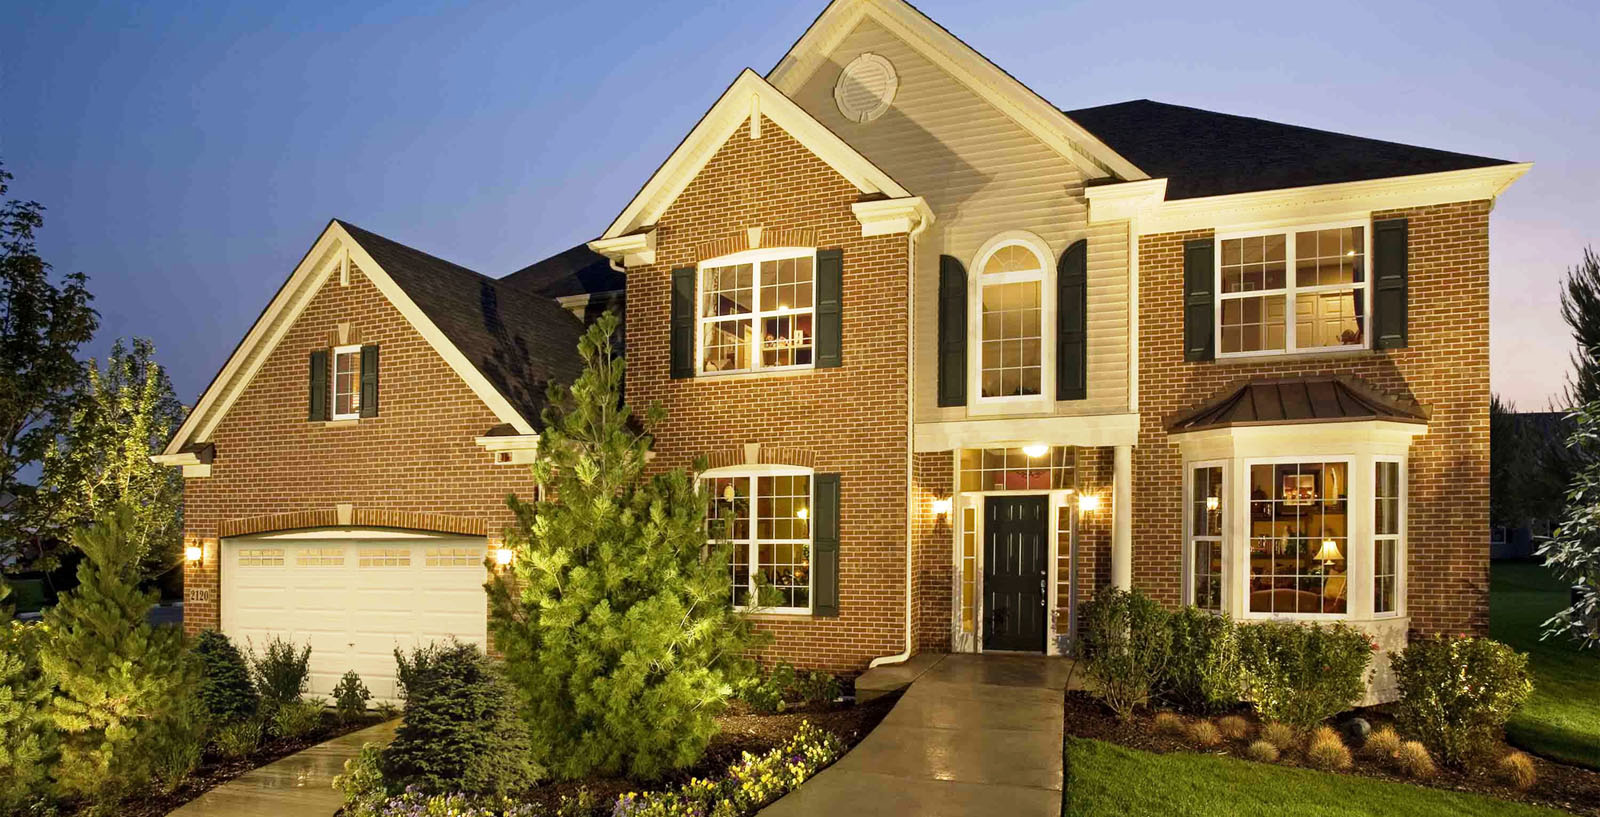 List your atlanta home expect full service pay a flat fee Atlanta home plans